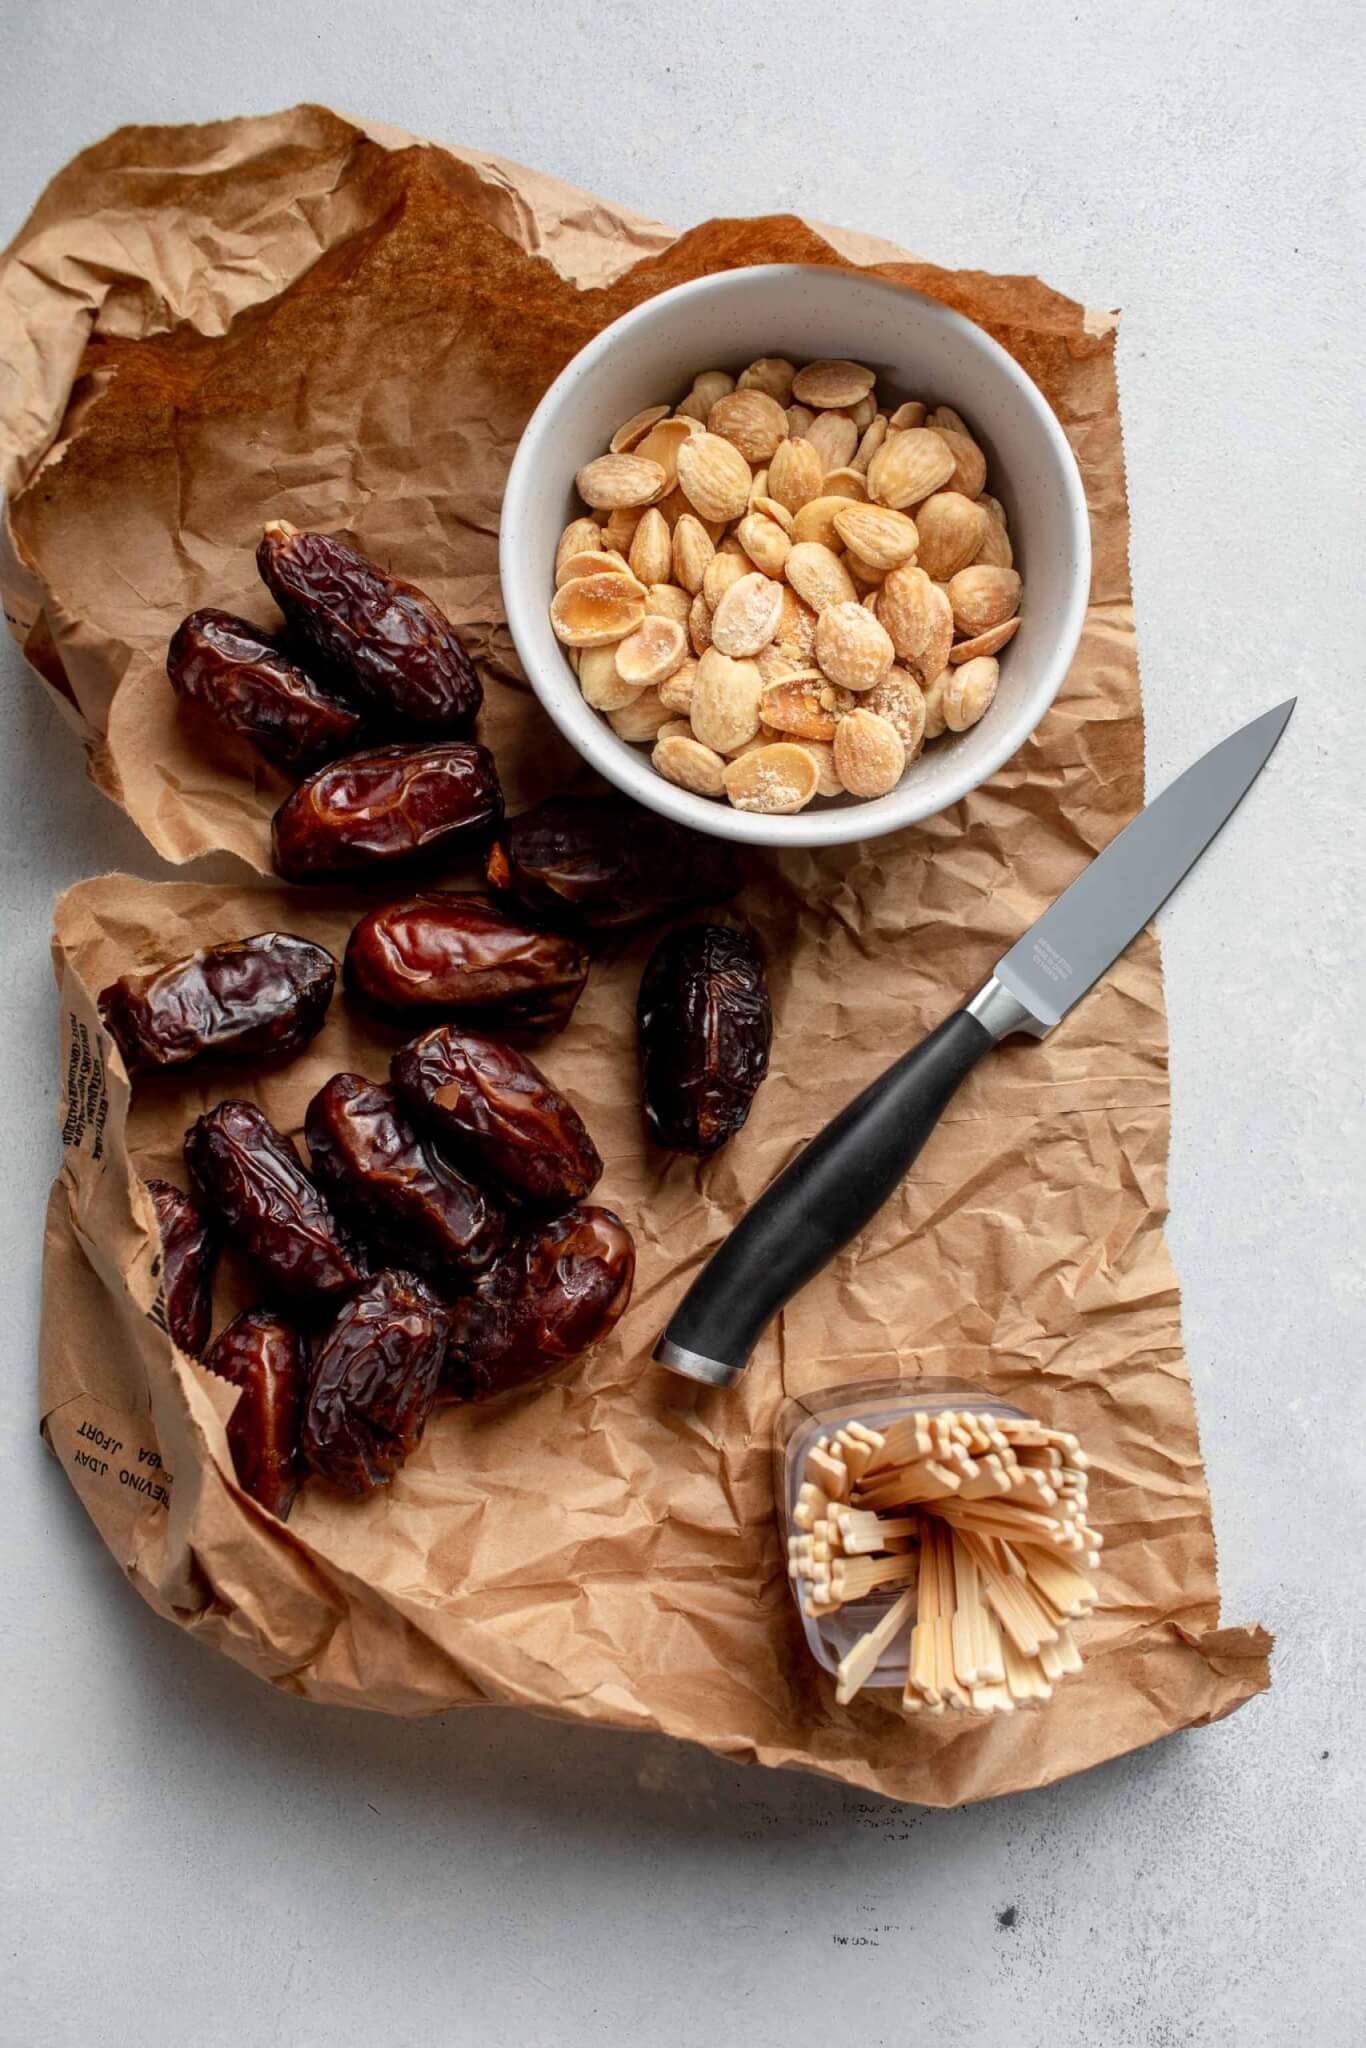 Dates on brown paper bag next to bowl of almonds.